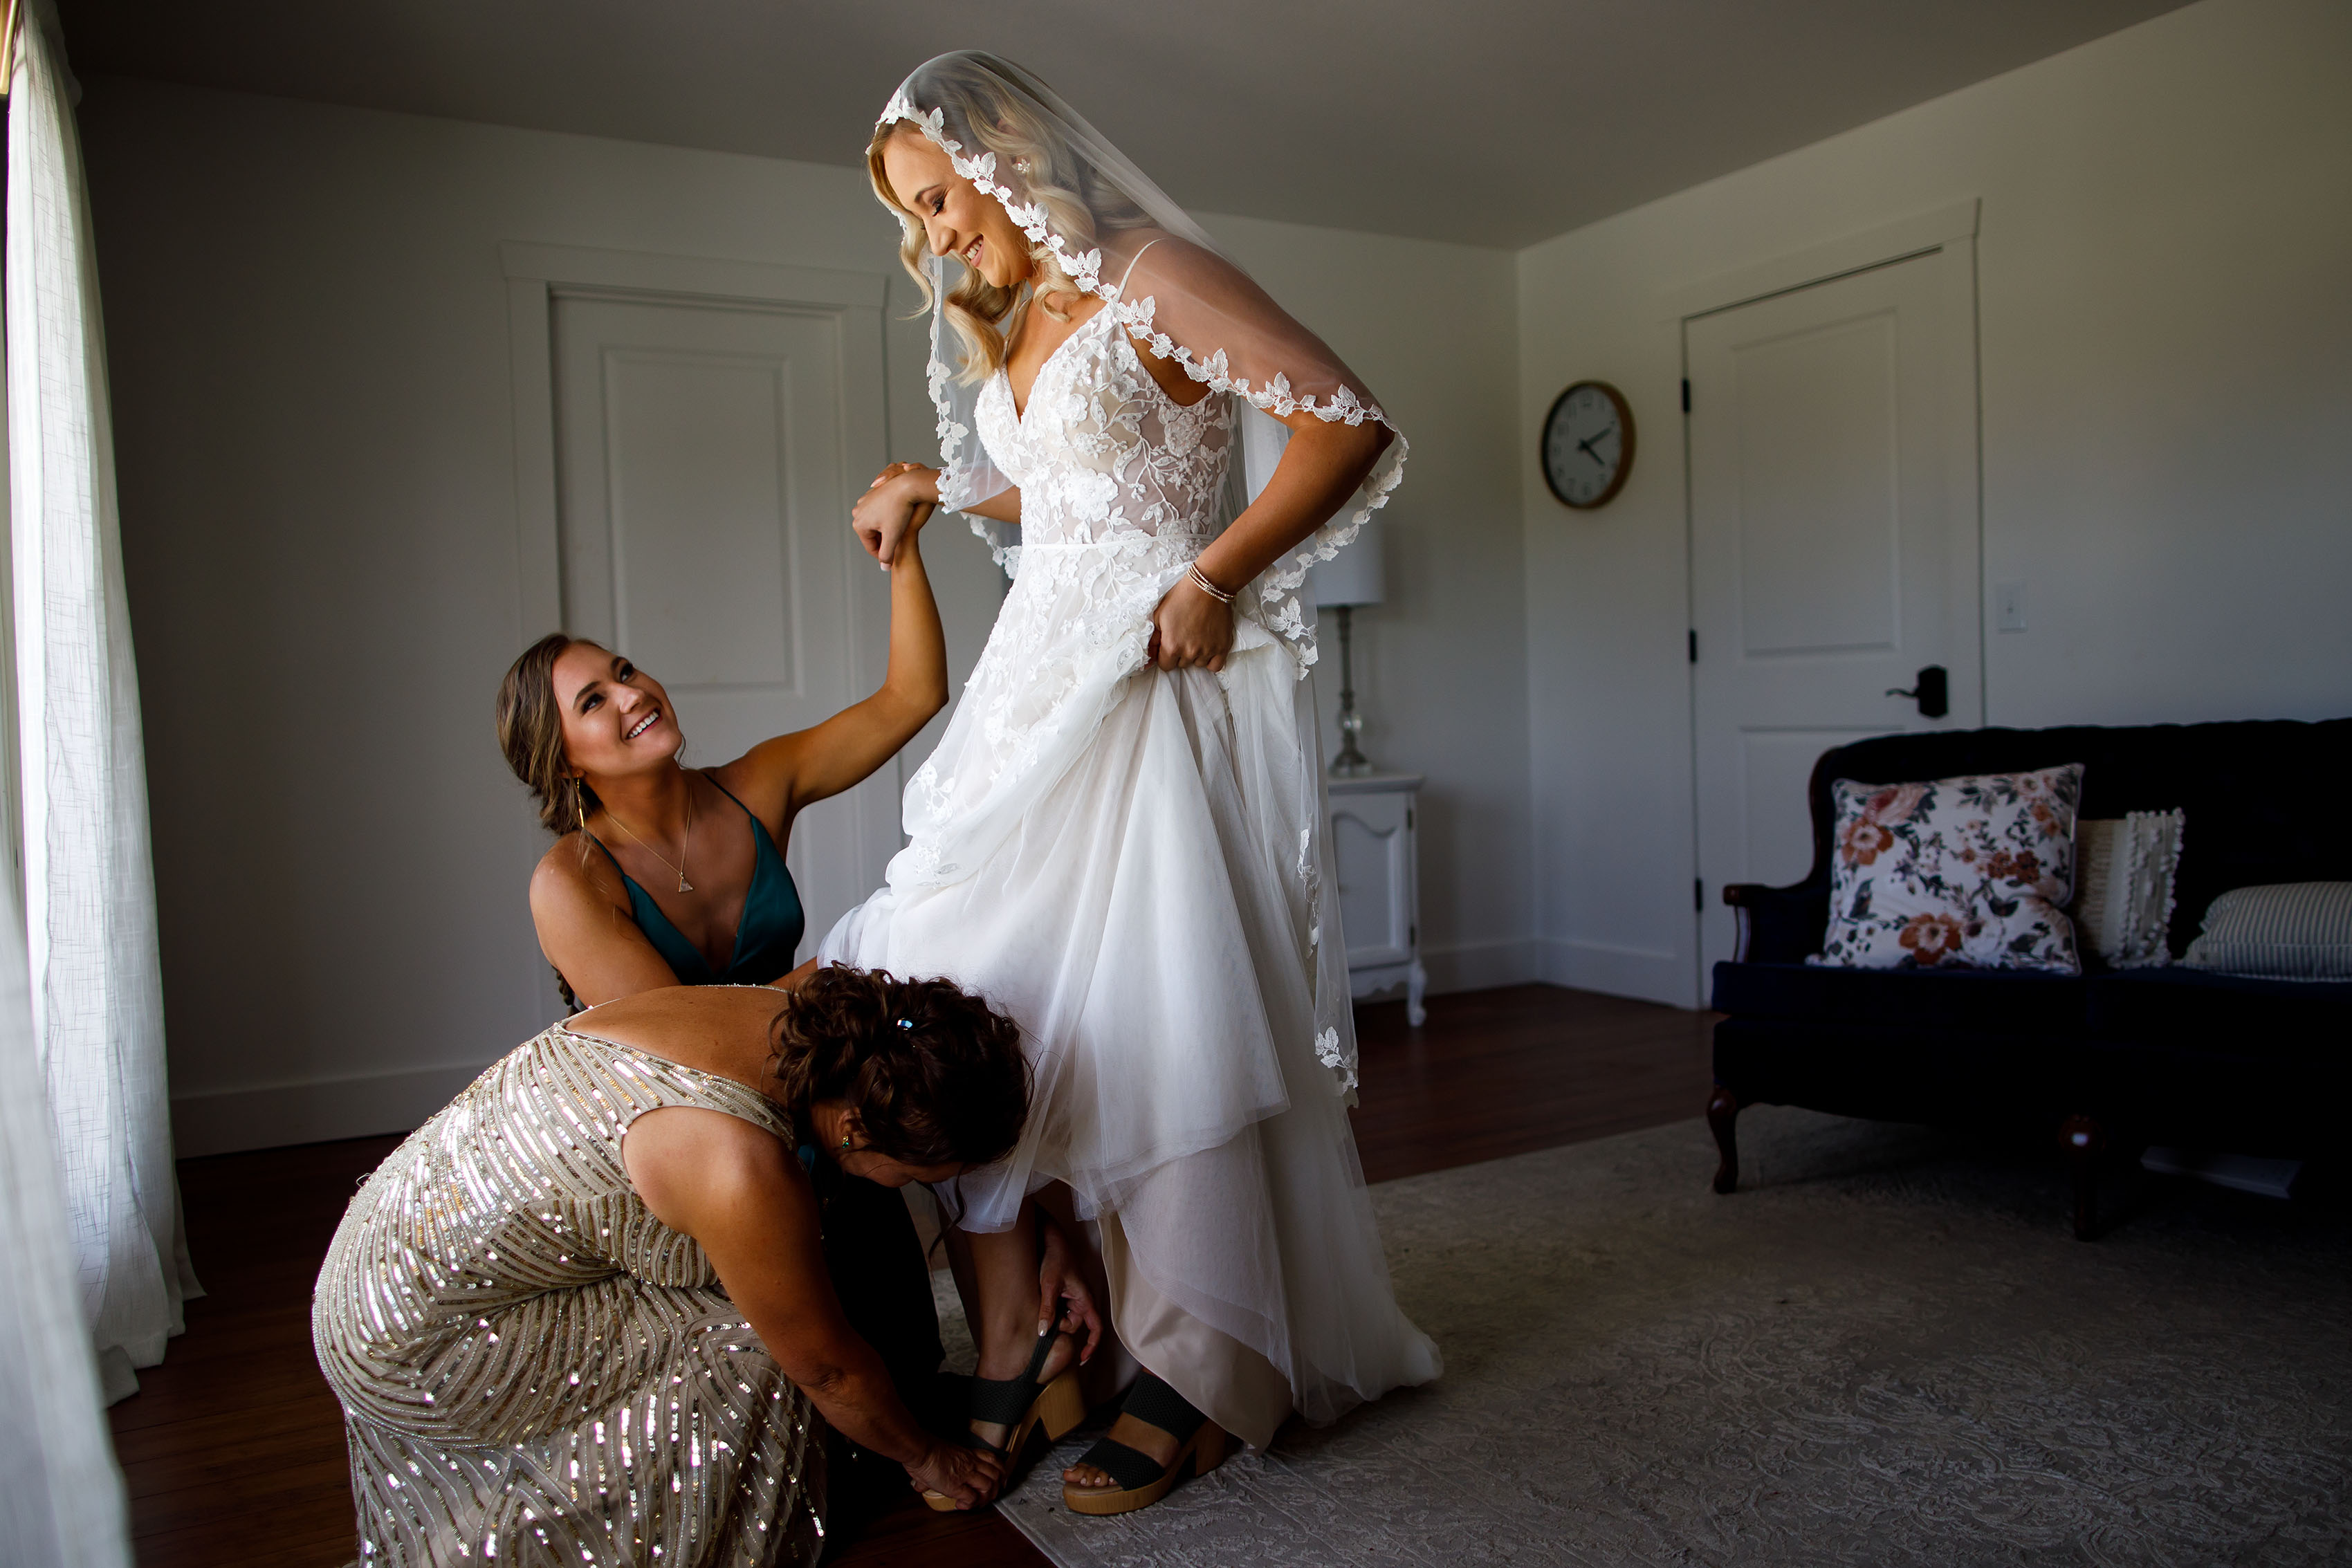 A bride gets ready in the bridal suite at Emerson Fields